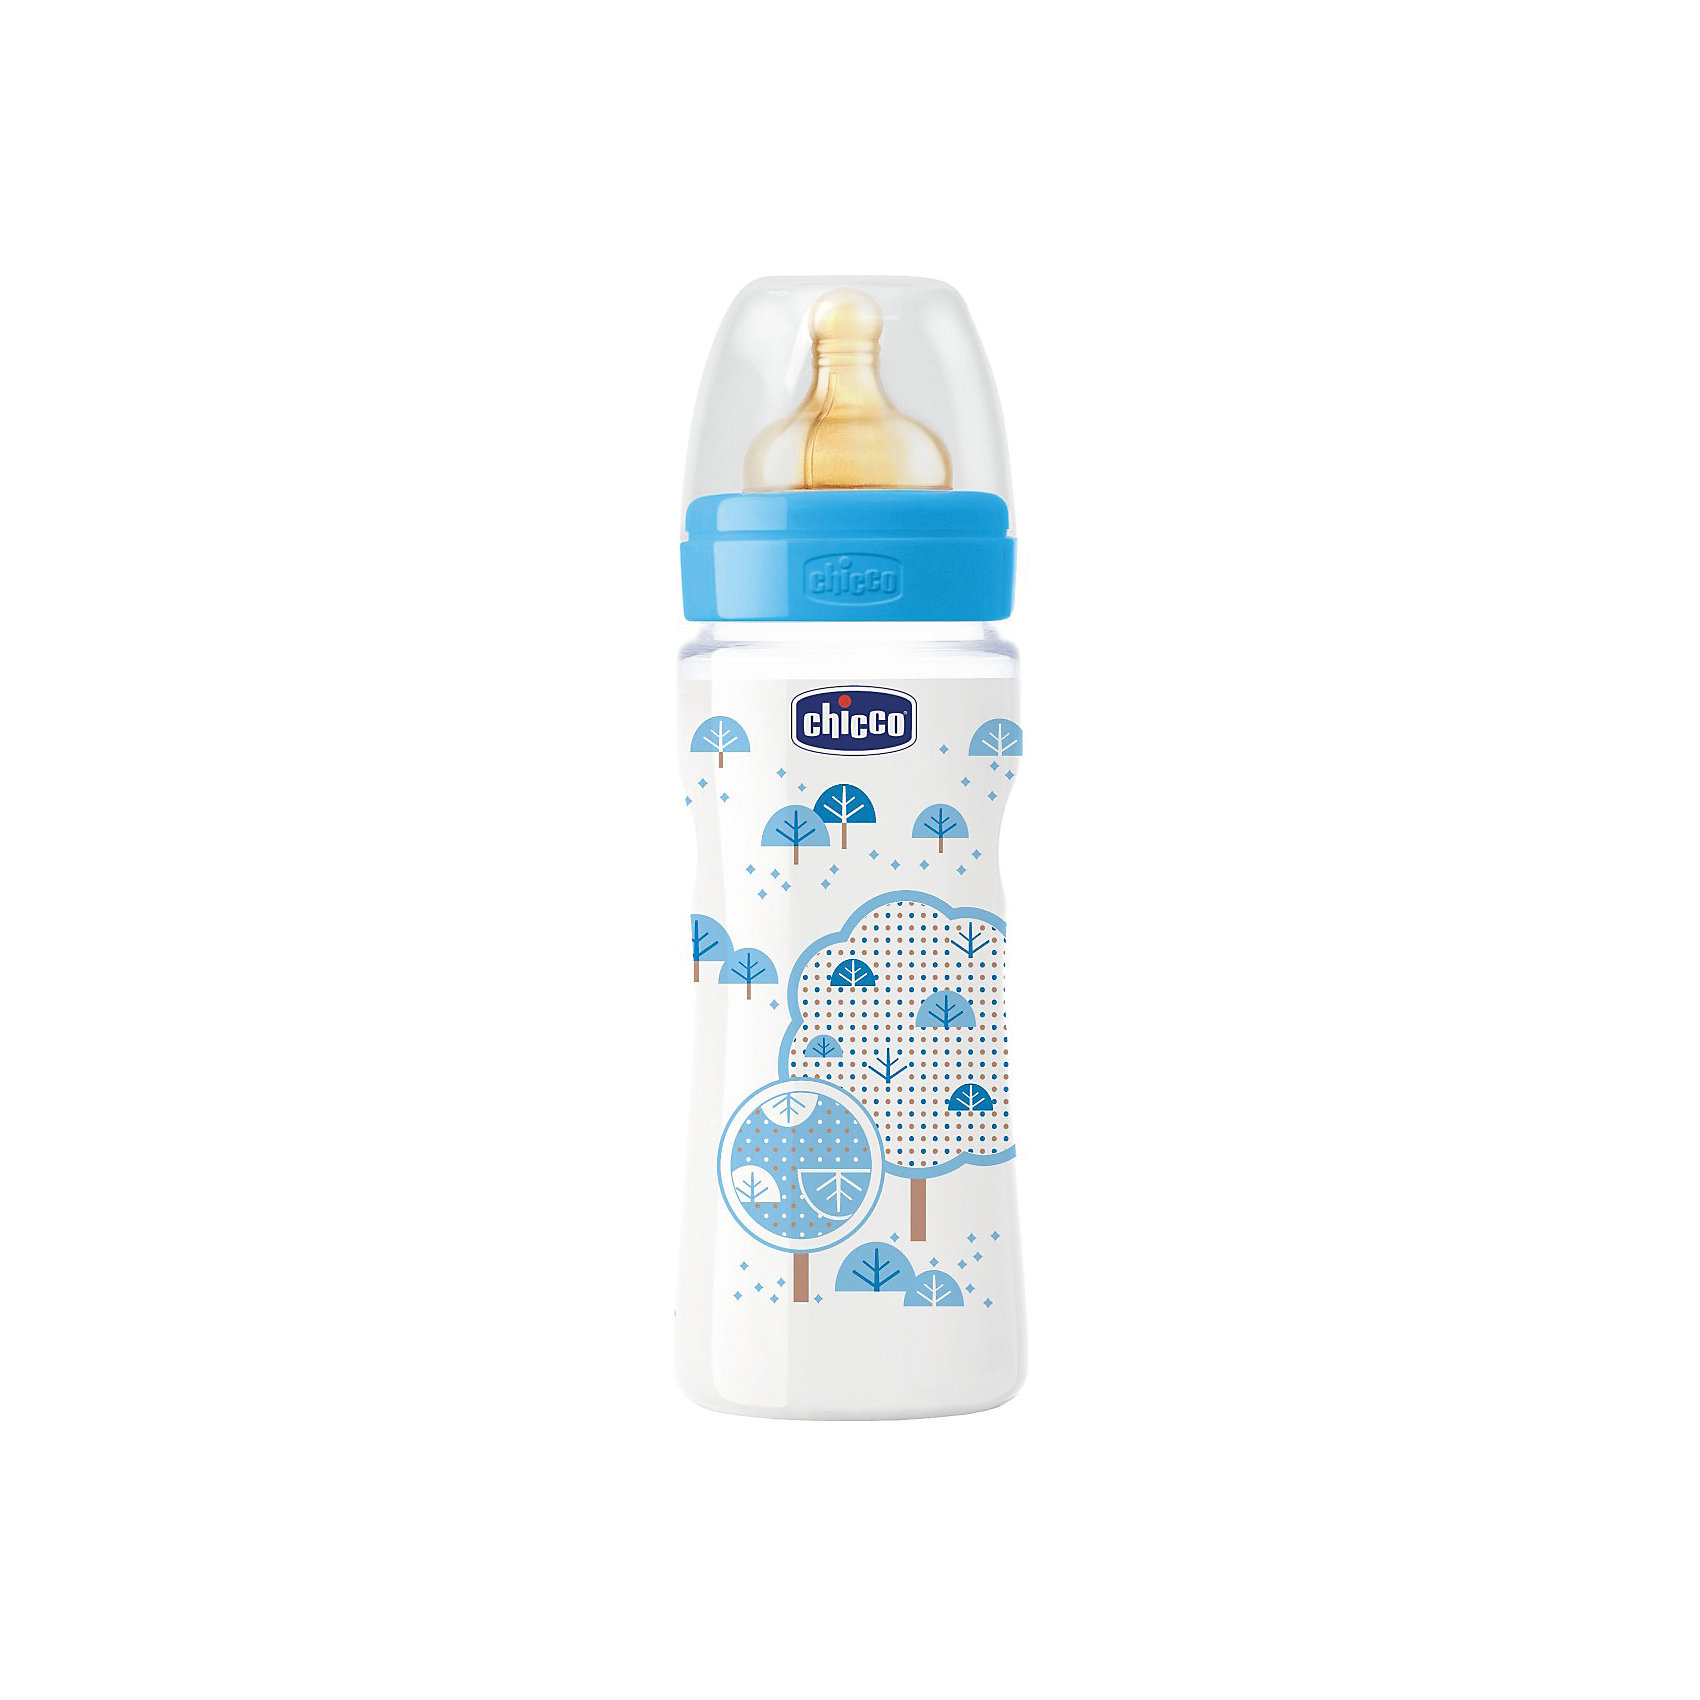 Бутылочка Well-Being Boy 4мес.+, лат.соска, РР, 330мл., CHICCO